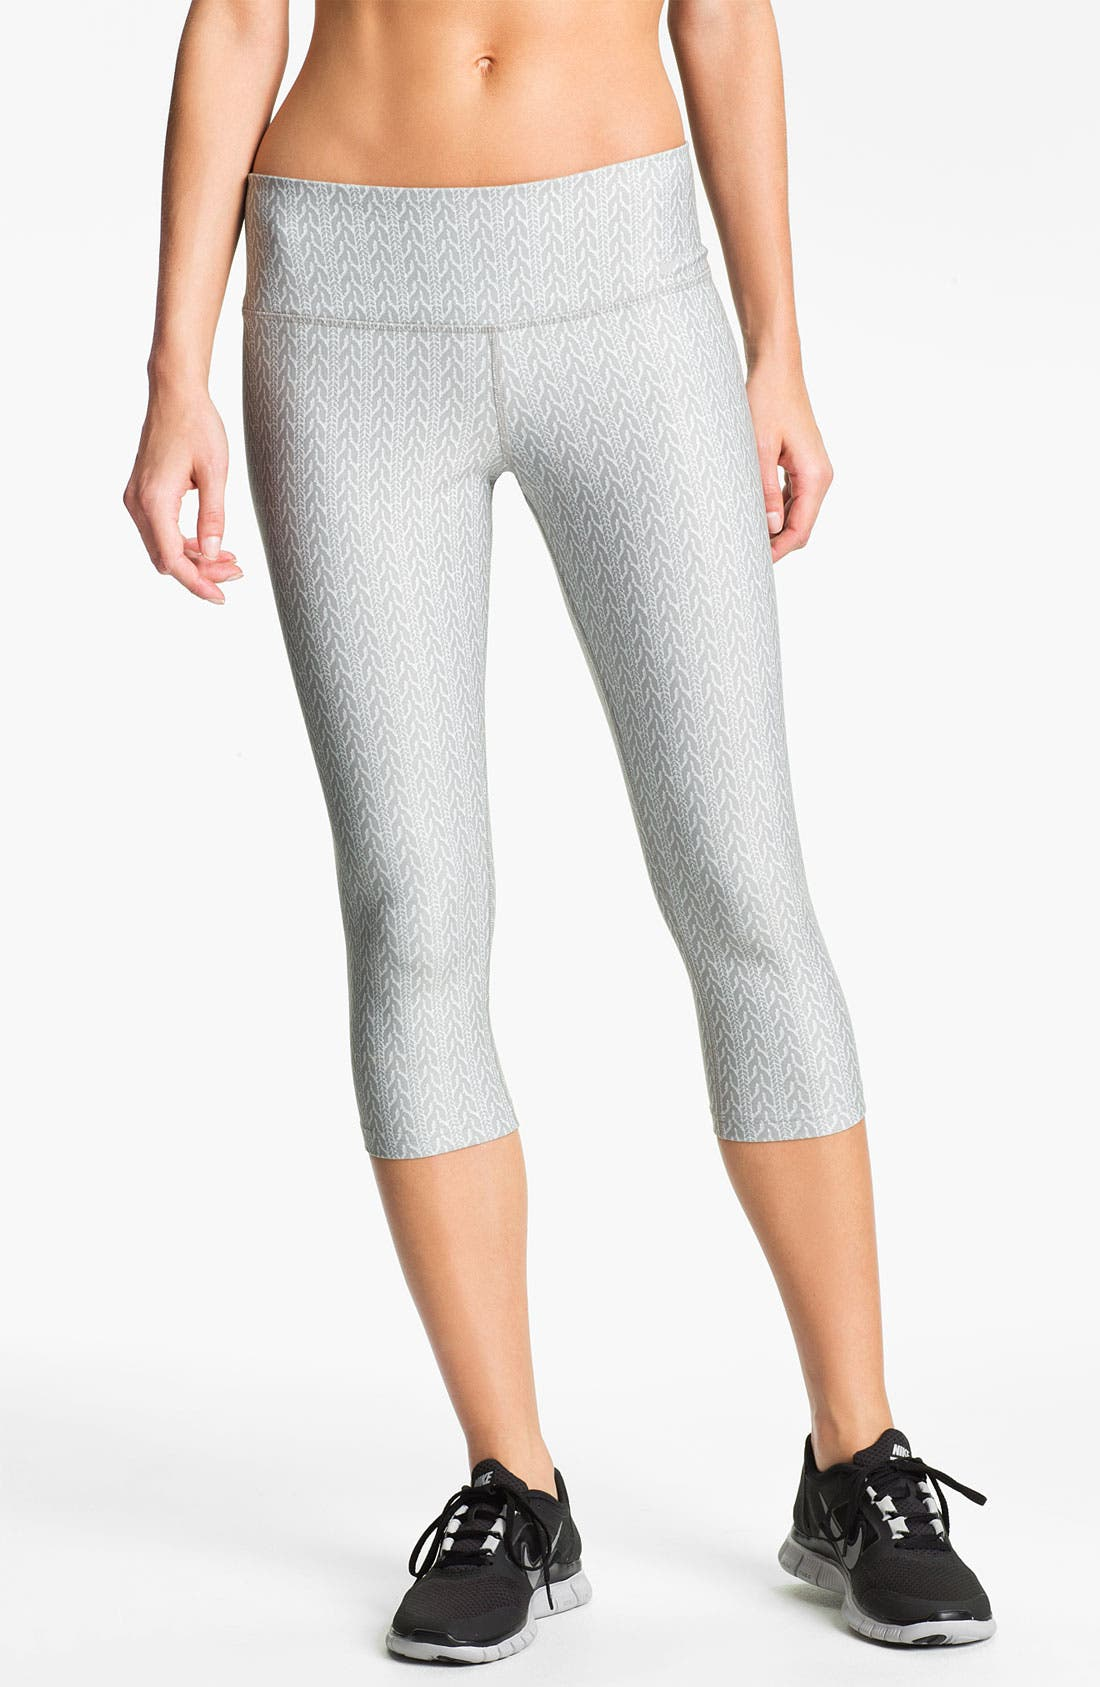 Alternate Image 1 Selected - Nike 'Poly' Print Capri Tights